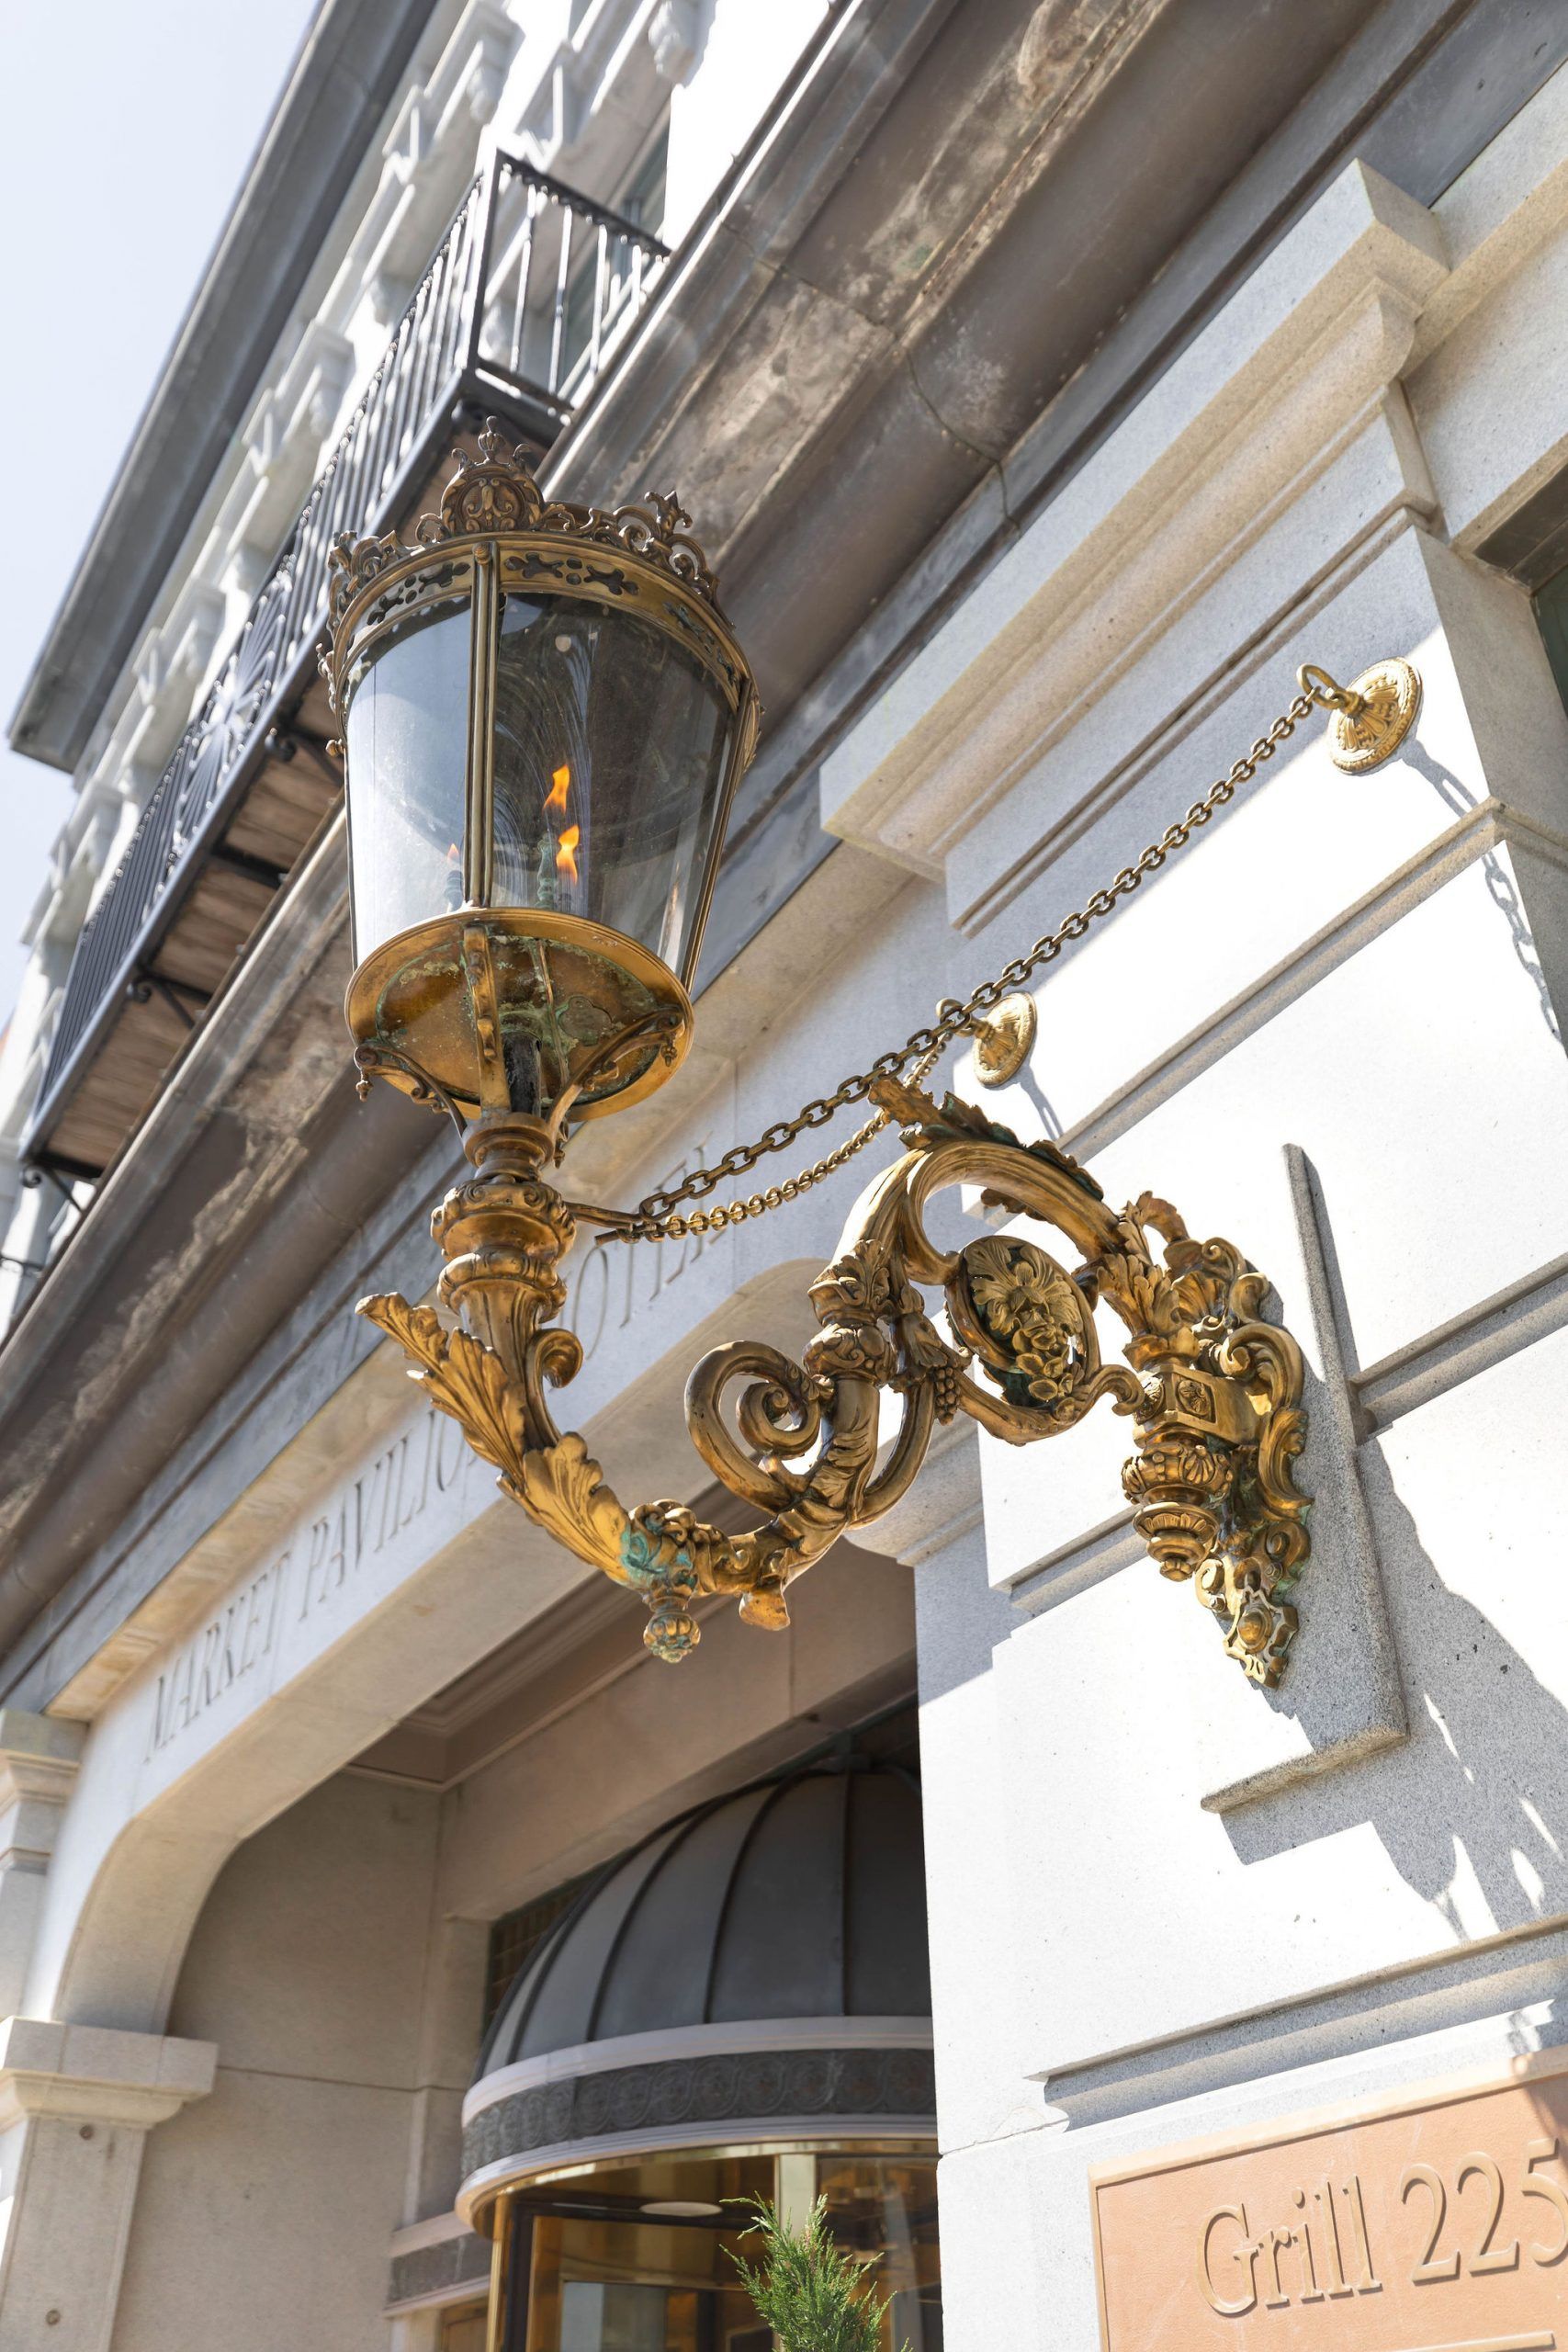 Gaslight Lamps Architecture of The Holy City Charleston Luxury Travel Guide by Photographer Annie Fairfax South Carolina Vacation Ideas and Honeymoon Inspiration